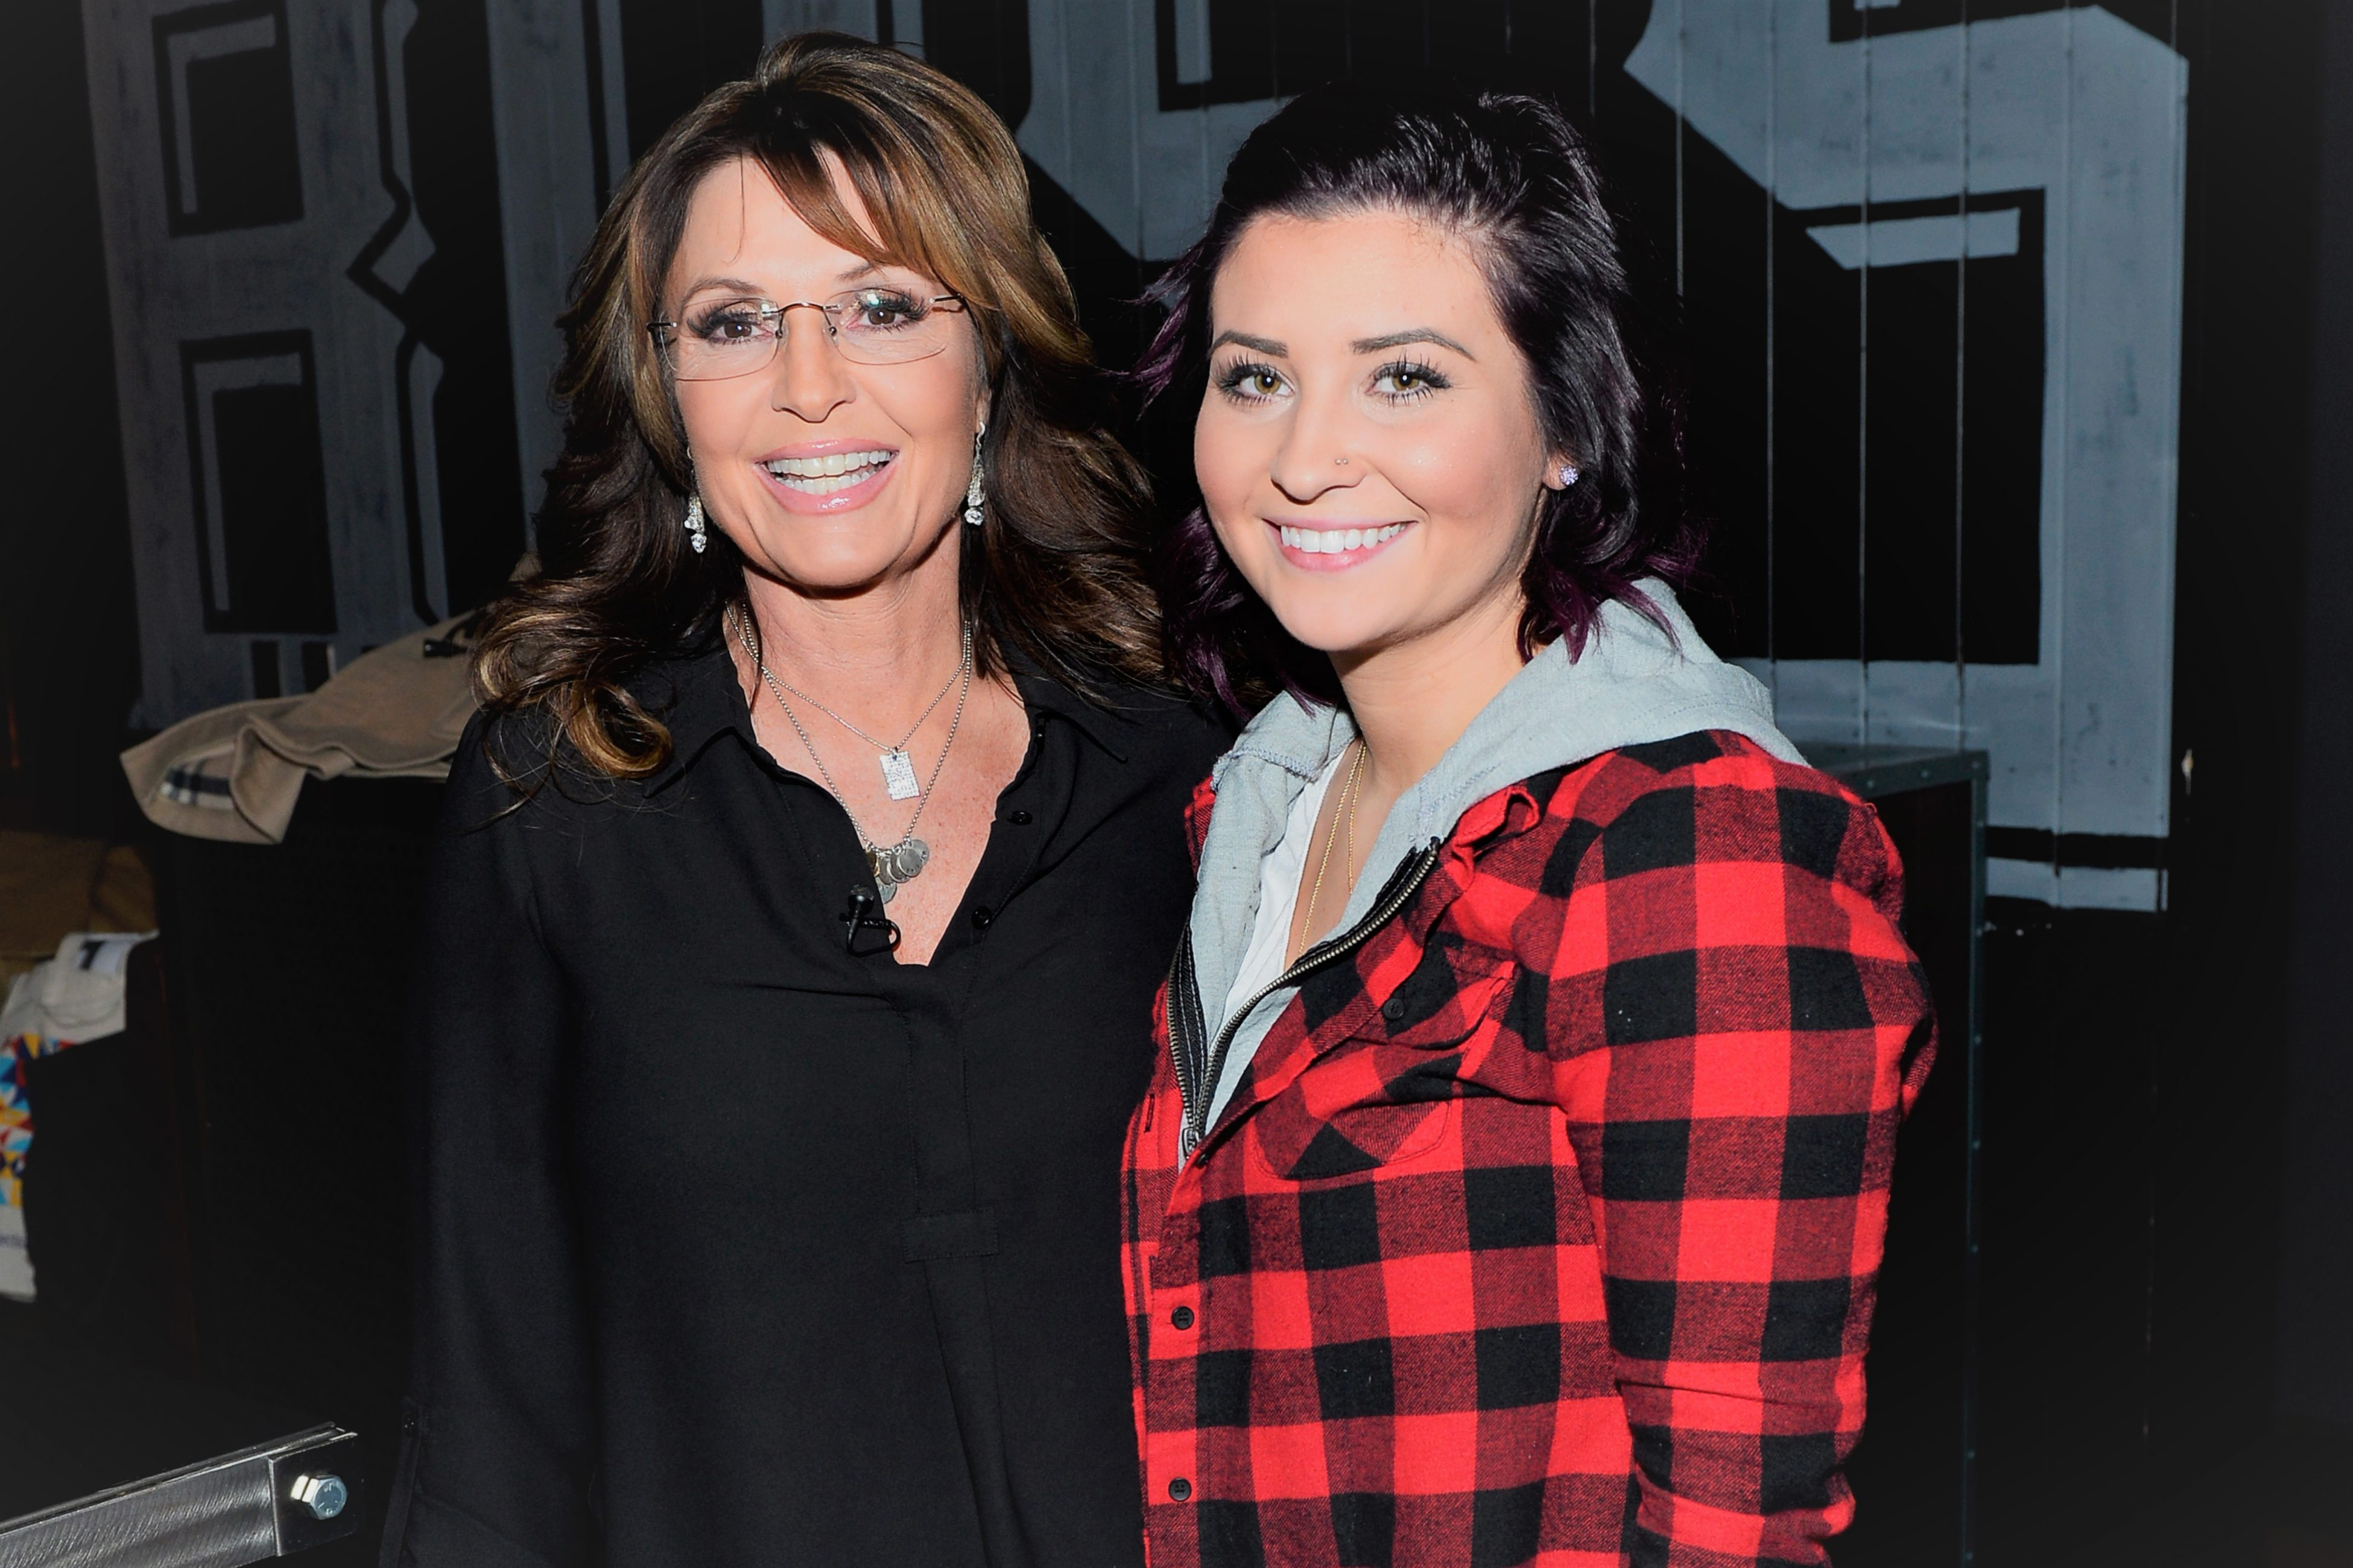 Sarah Palin's Daughter Willow Welcomes Twin Girls Banks and Blaise: 'We Are So in Love'